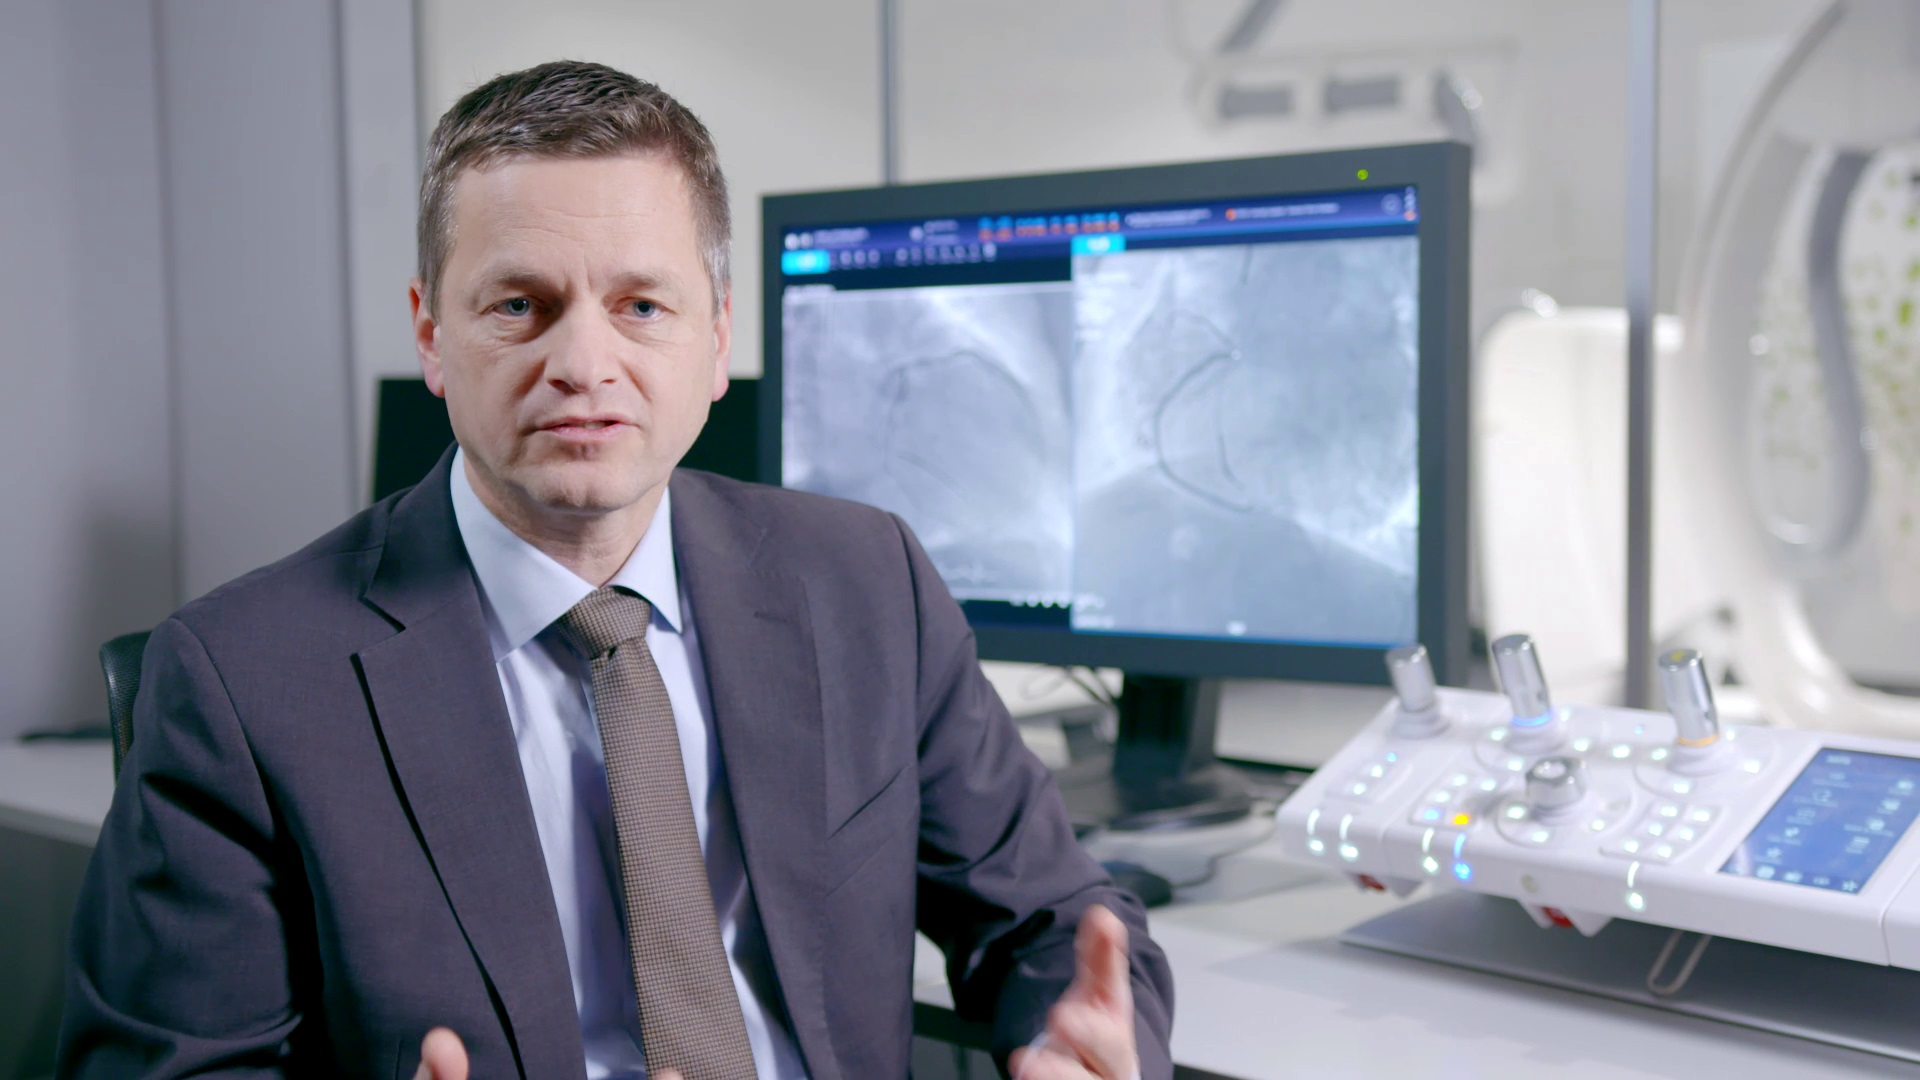 Professor Stephan Achenbach on trends in interventional cardiology